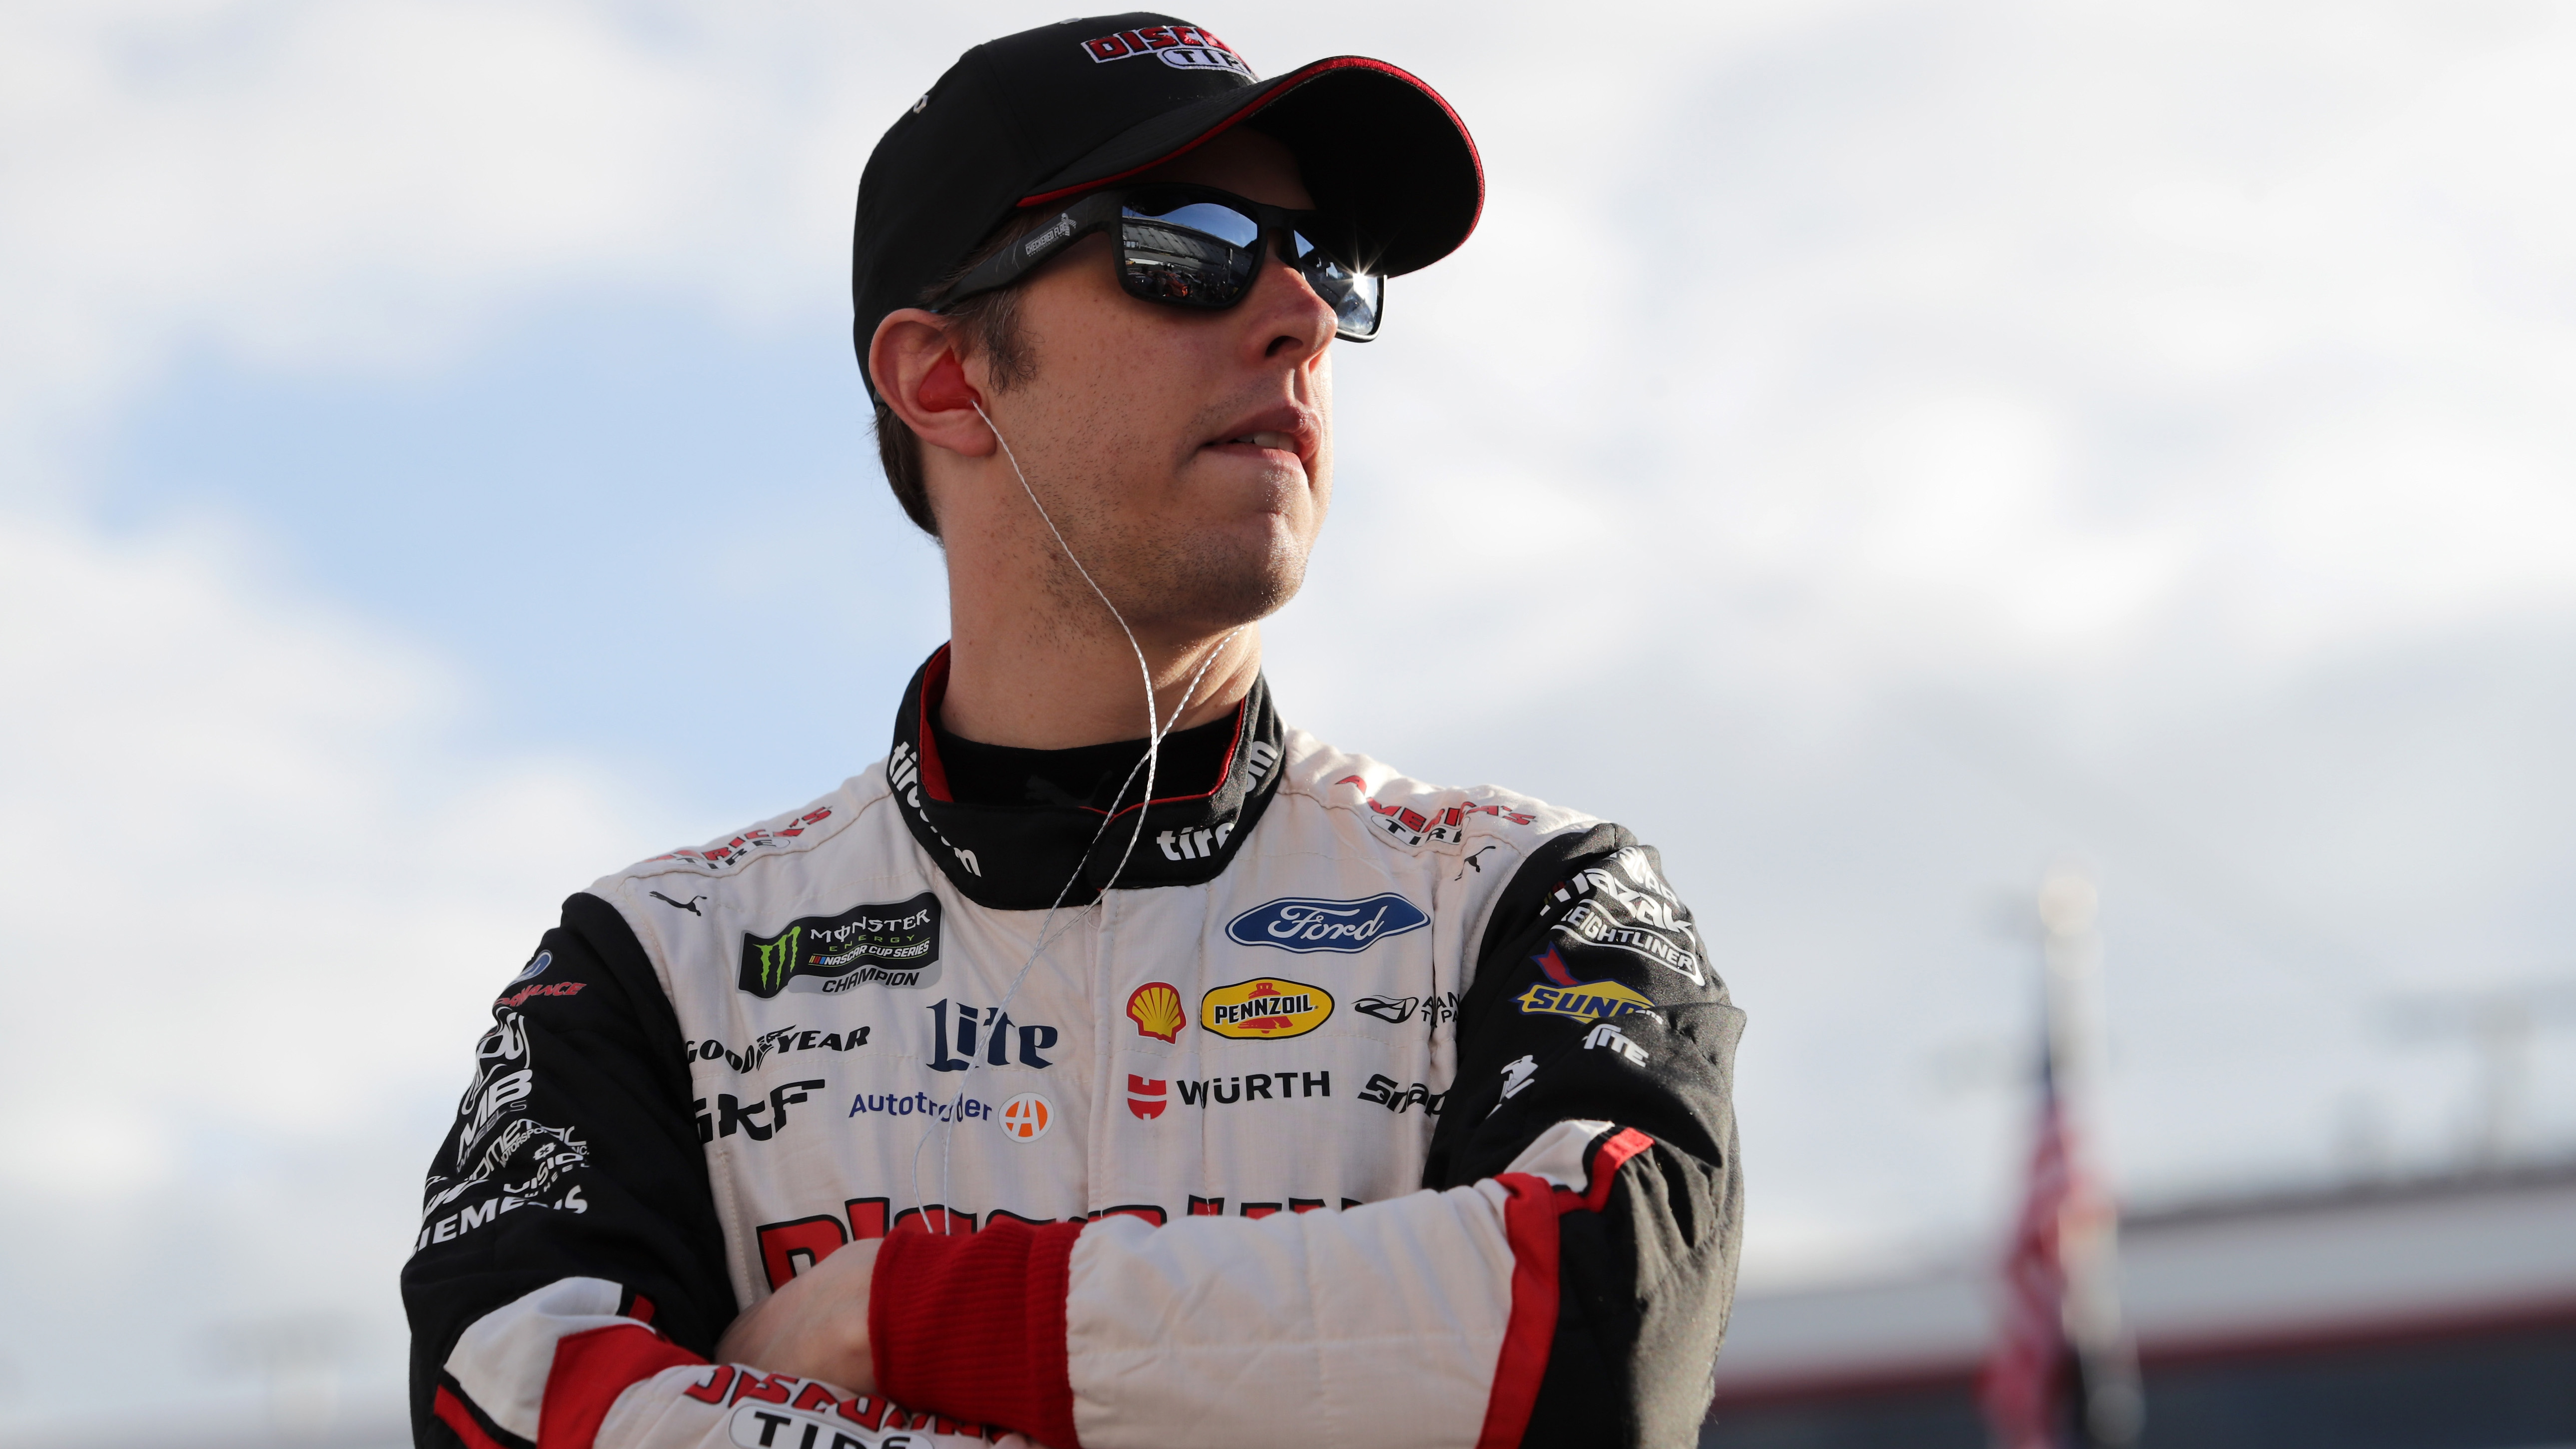 NASCAR driver odds to win at Talladega Superspeedway